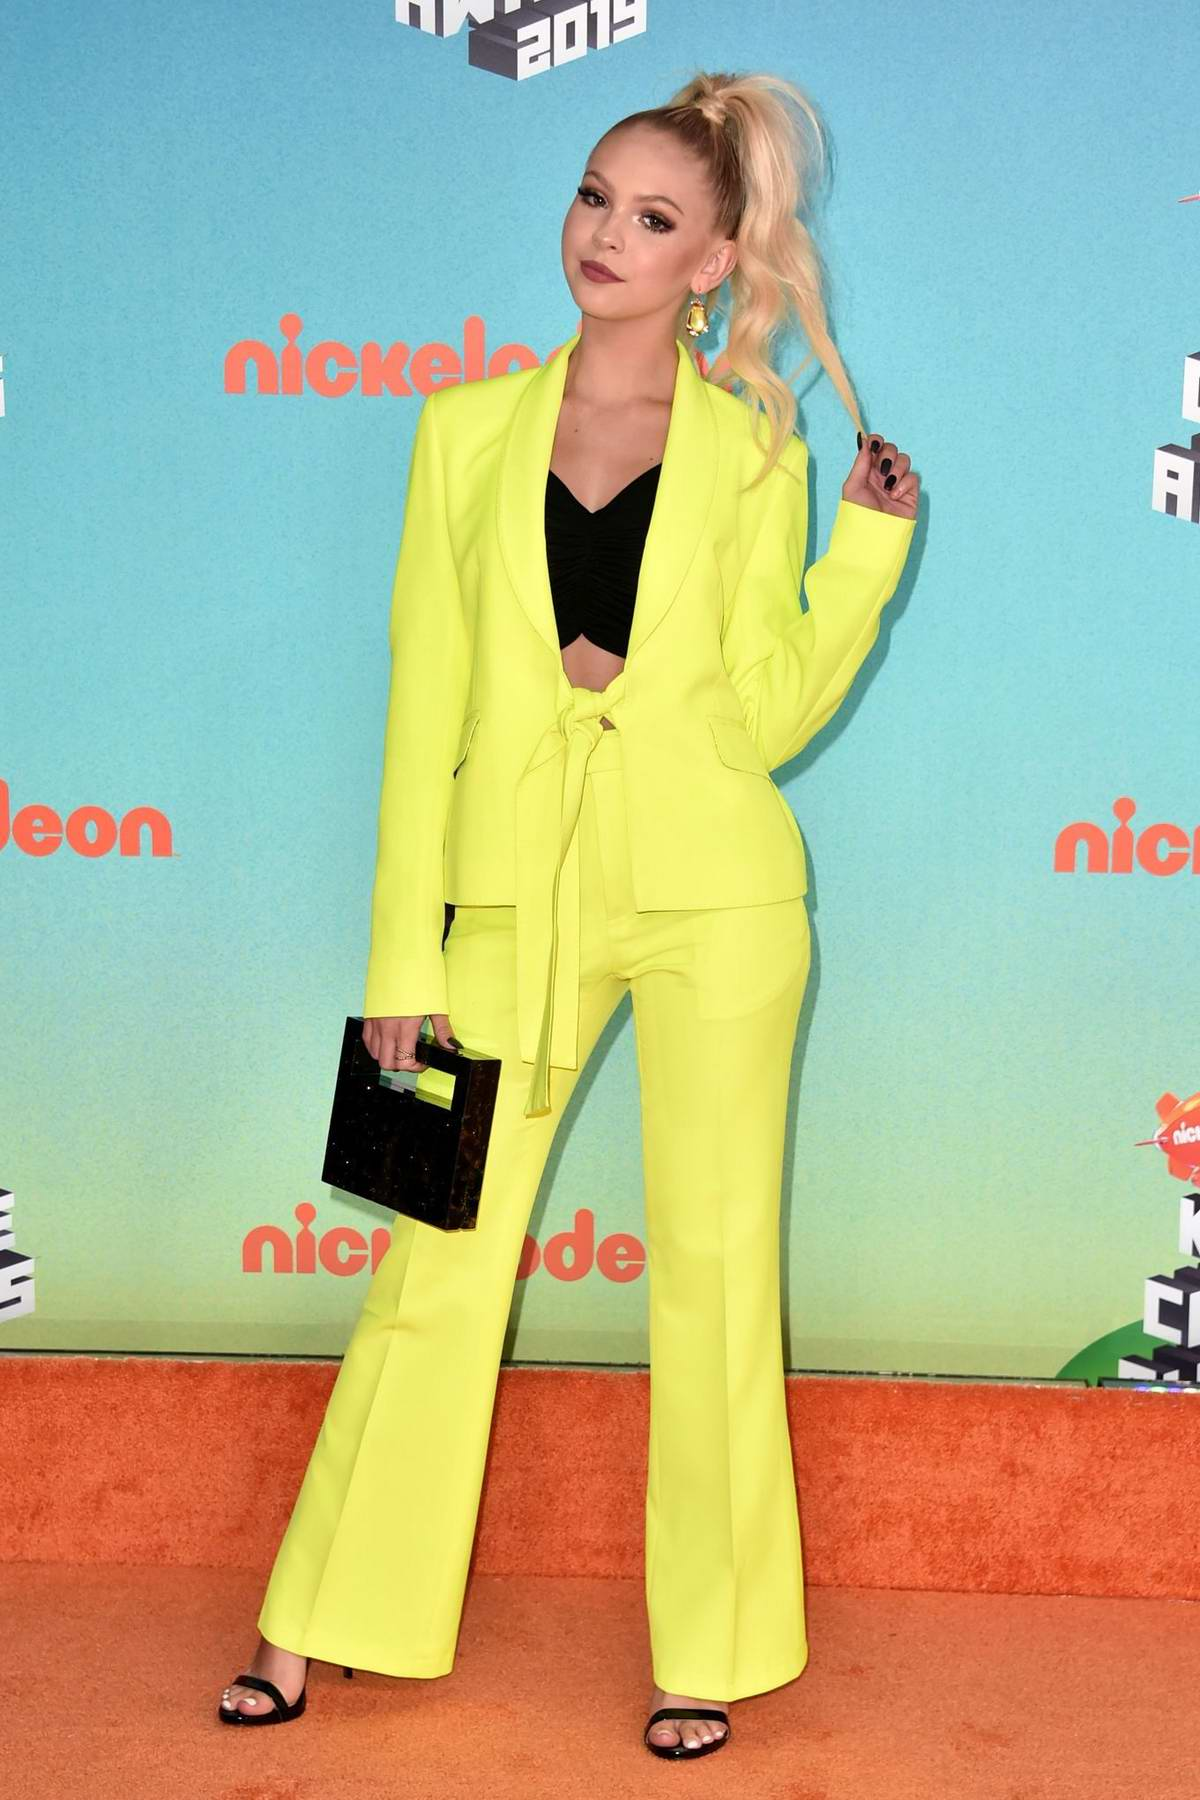 Jordyn Jones attends the Nickelodeon's 2019 Kids' Choice Awards at Galen Center in Los Angeles